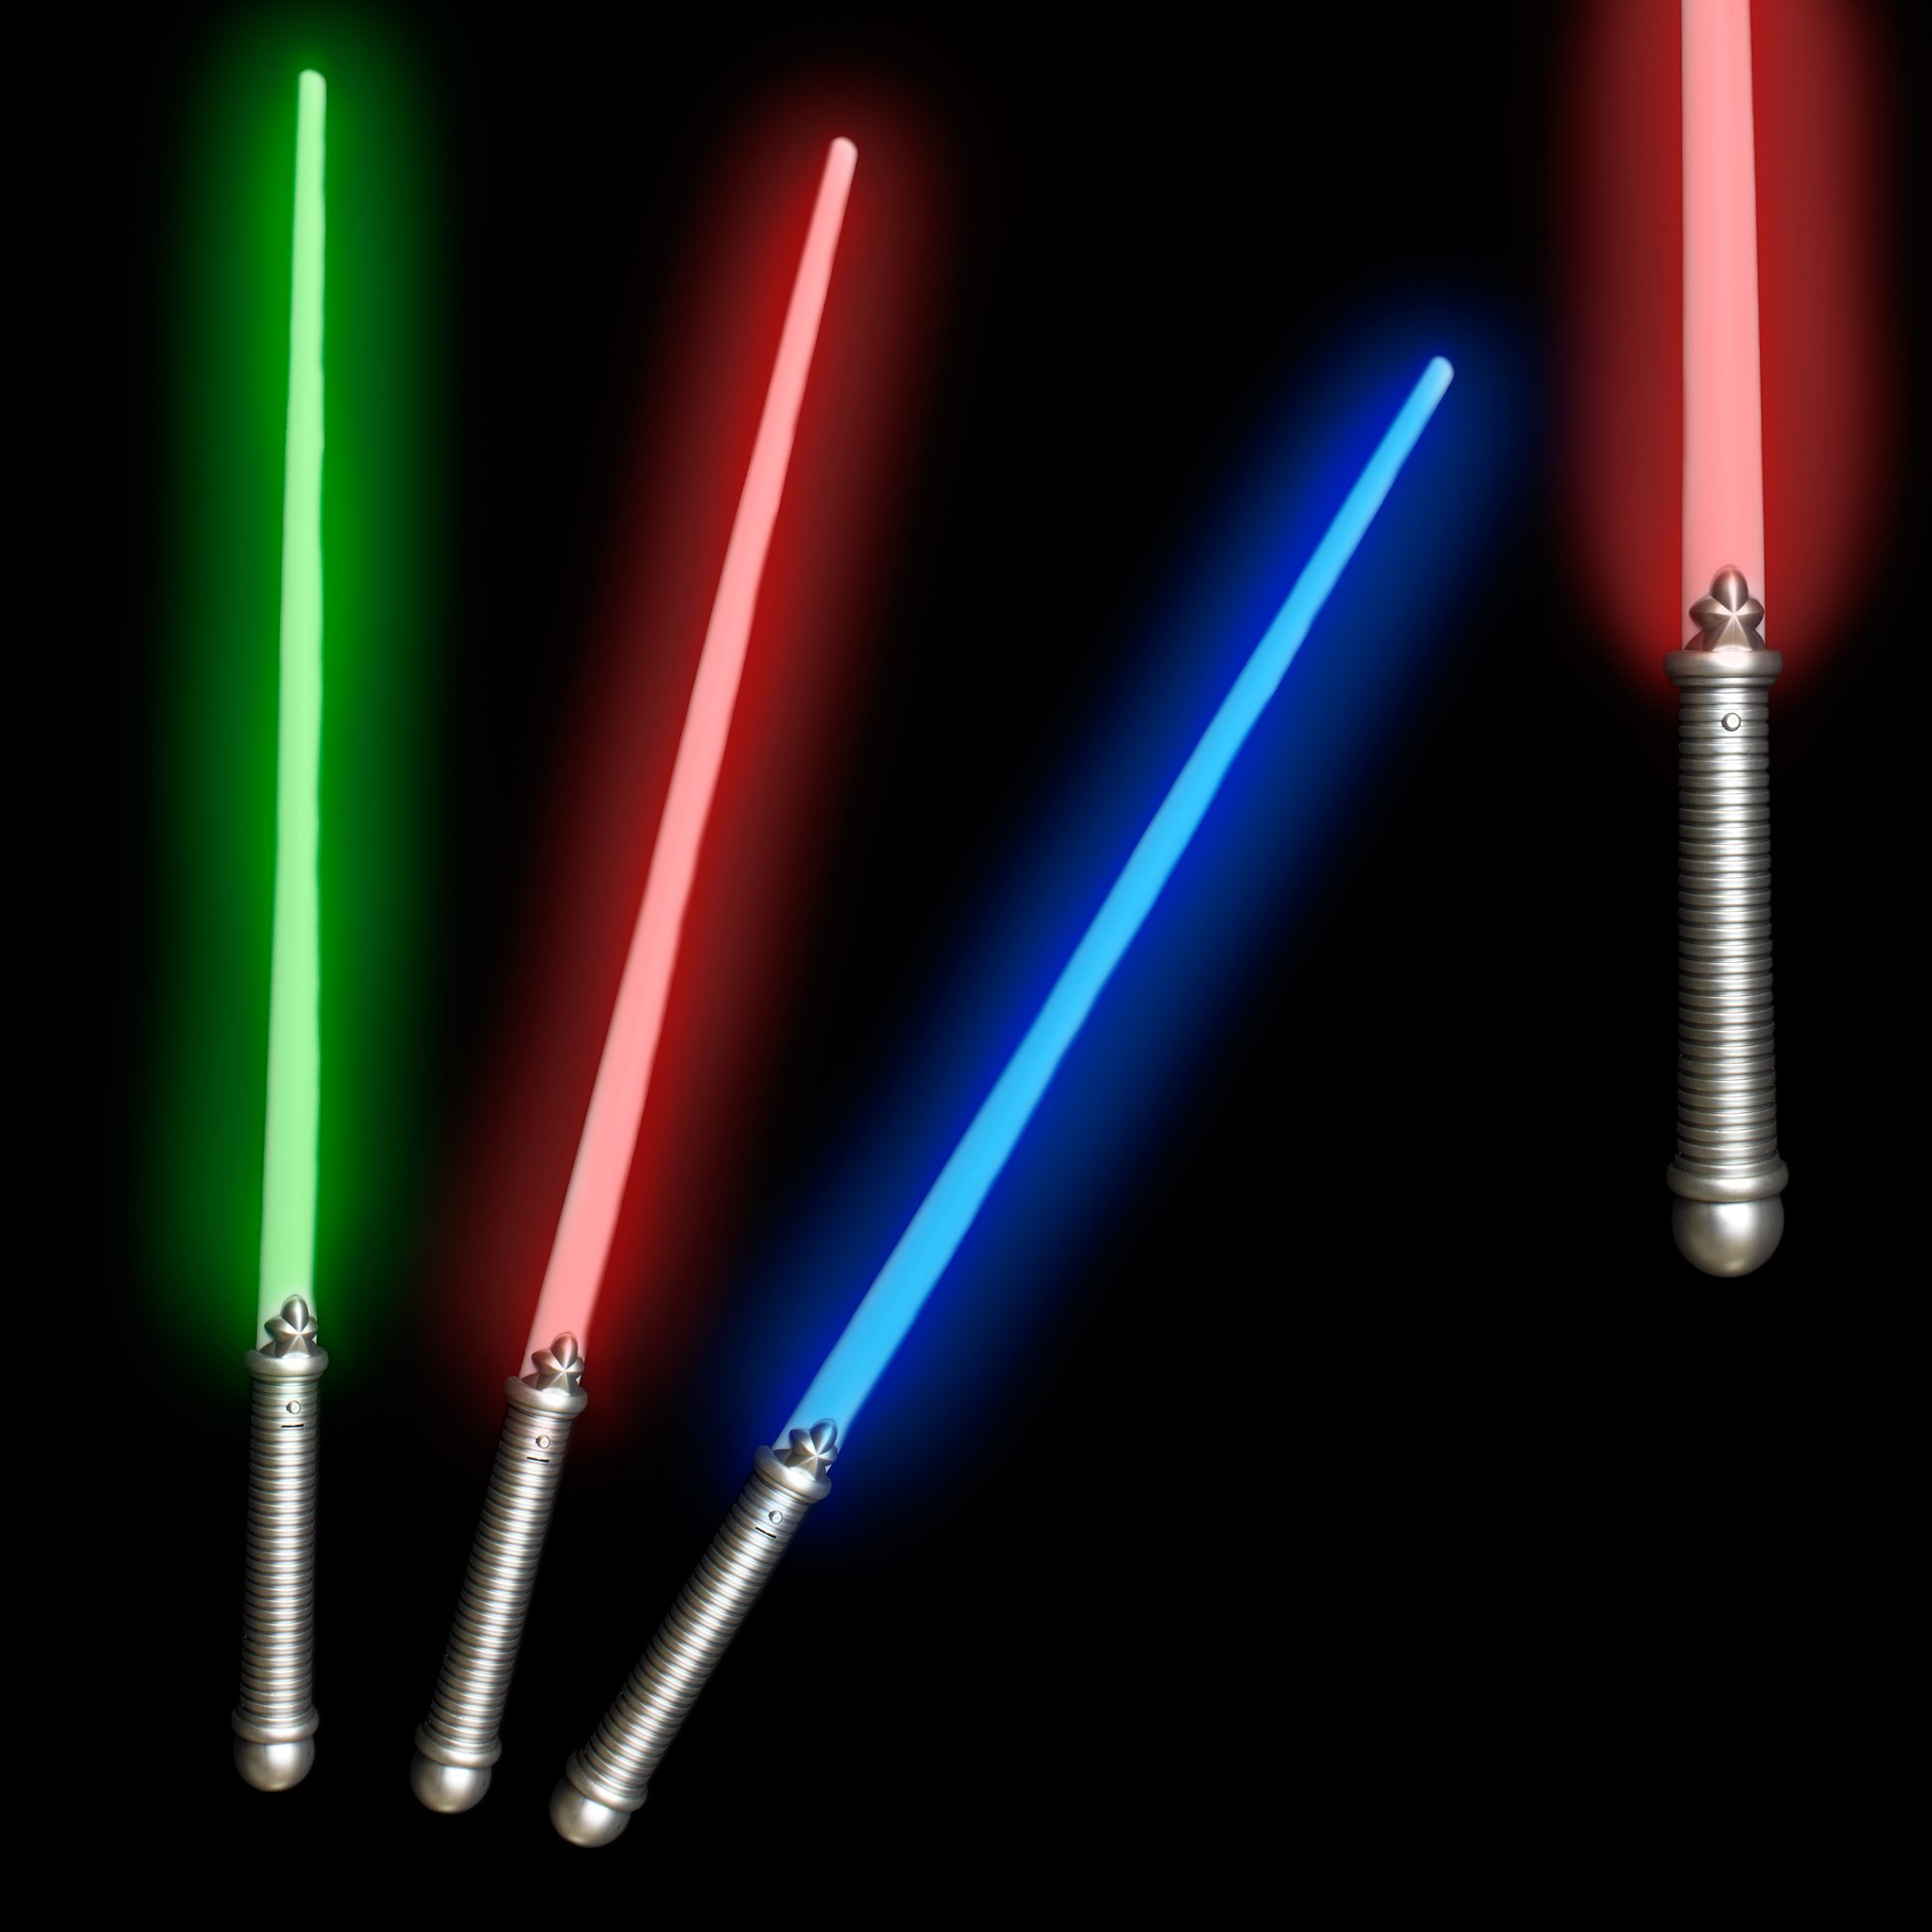 Fun Central X552 LED Light Saber, Light Swords, Glow Light Saber, LED Light Sword, Light Saber, Light Saber Sword - 28'' in Assorted Colors 6-pack Glow in the Dark - Perfect for Star Wars Birthday Part